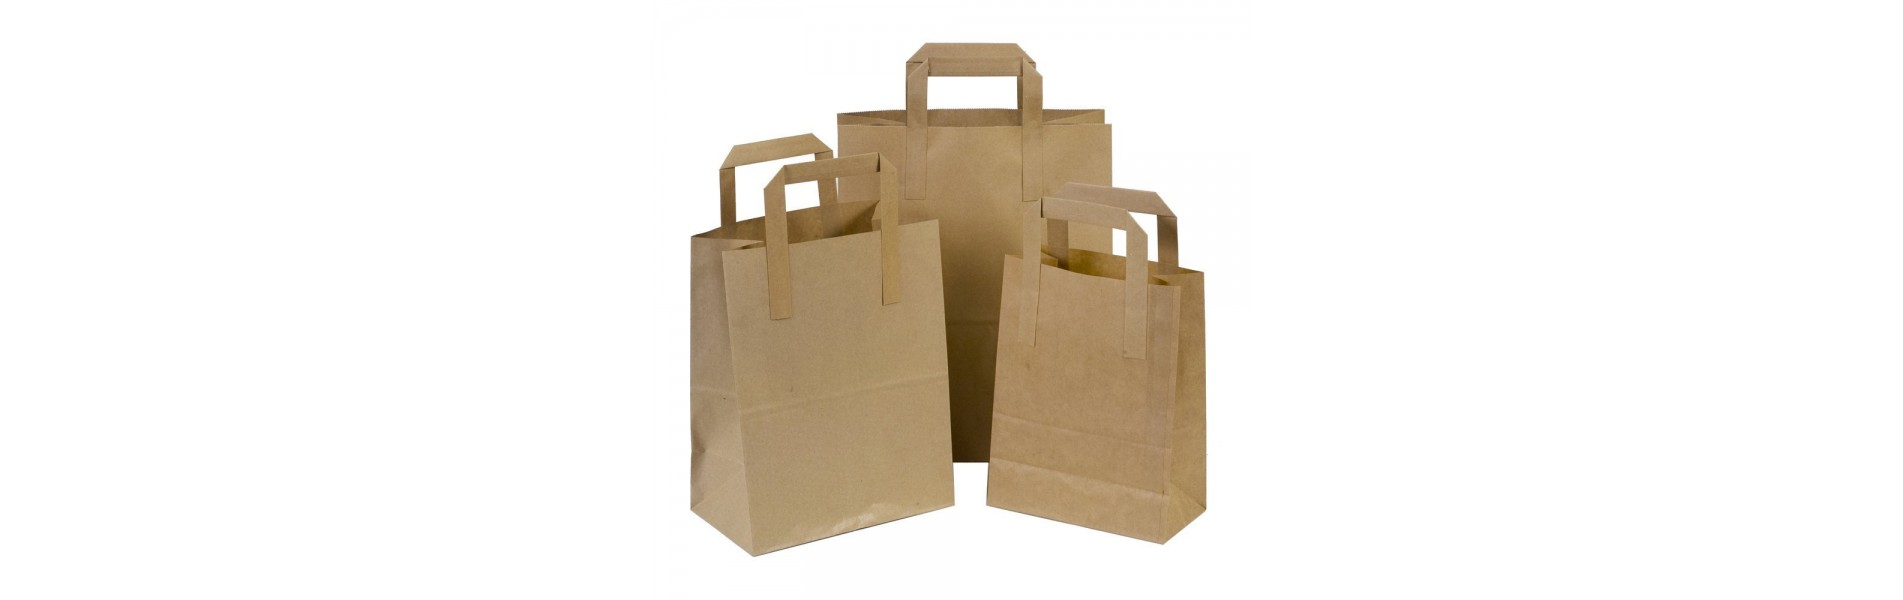 Paper Flat Handle Carry Bags